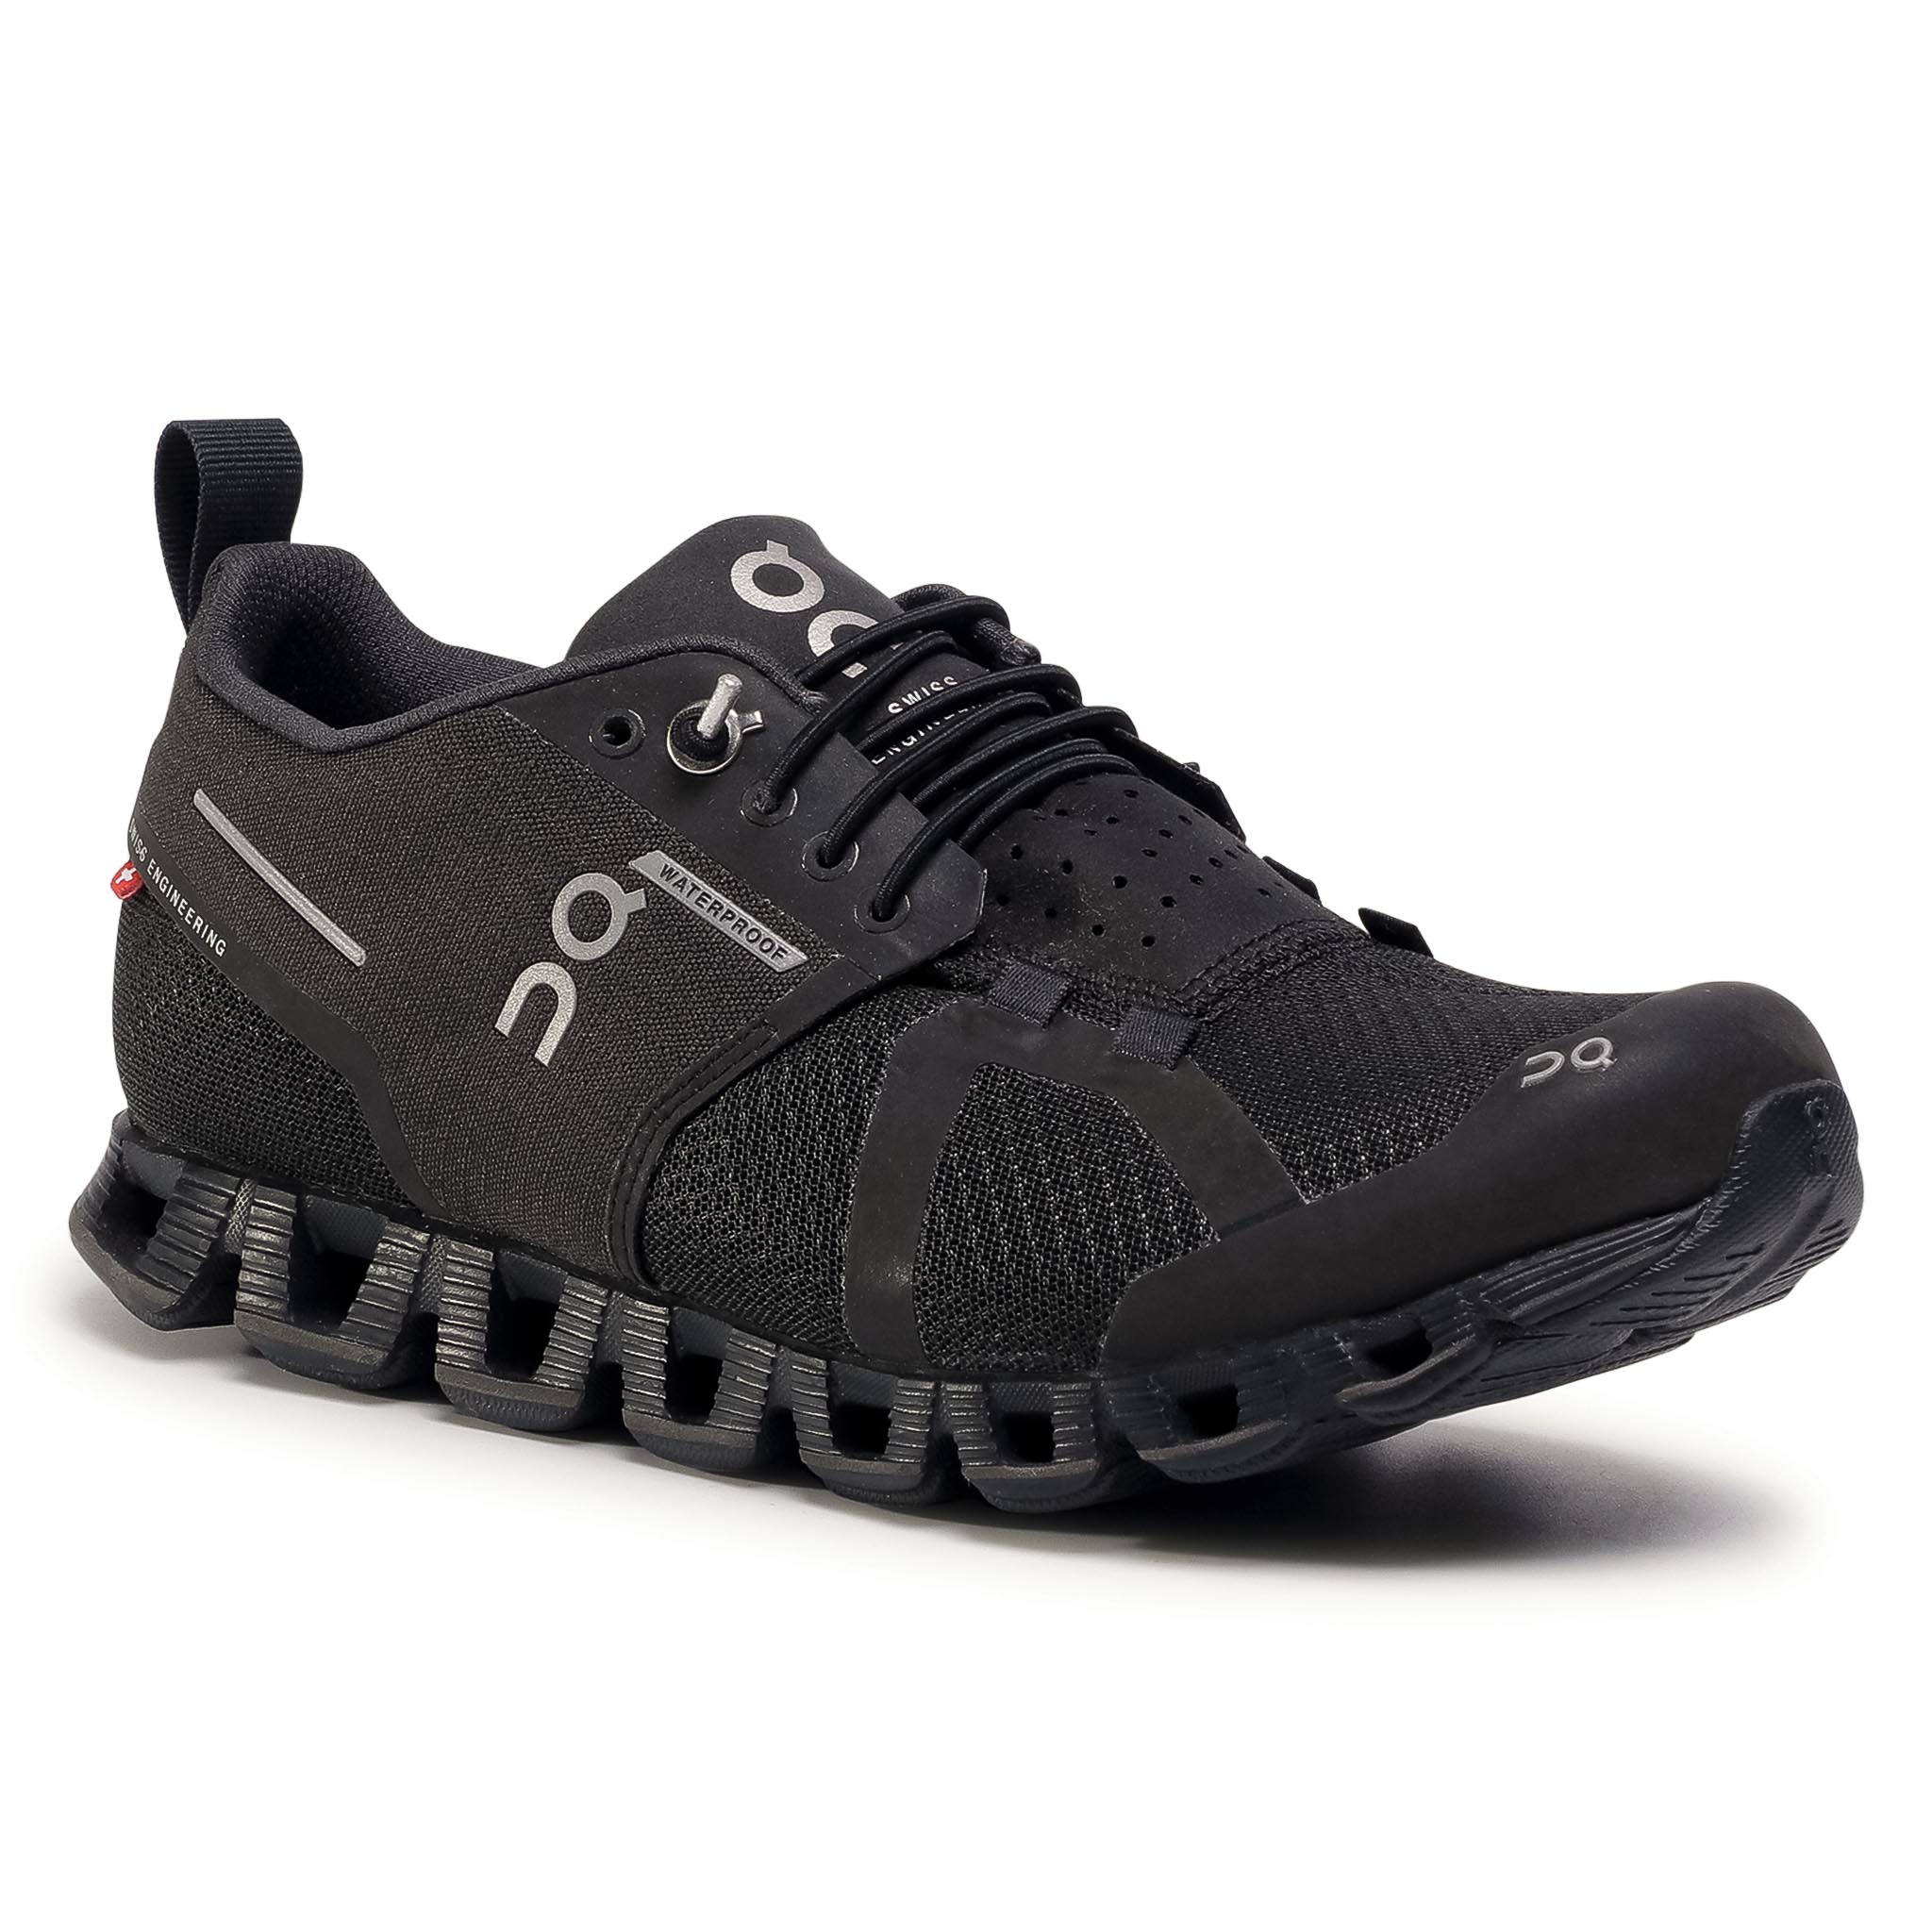 Image of Schuhe ON - Cloud Waterproof 00019 Black 99986